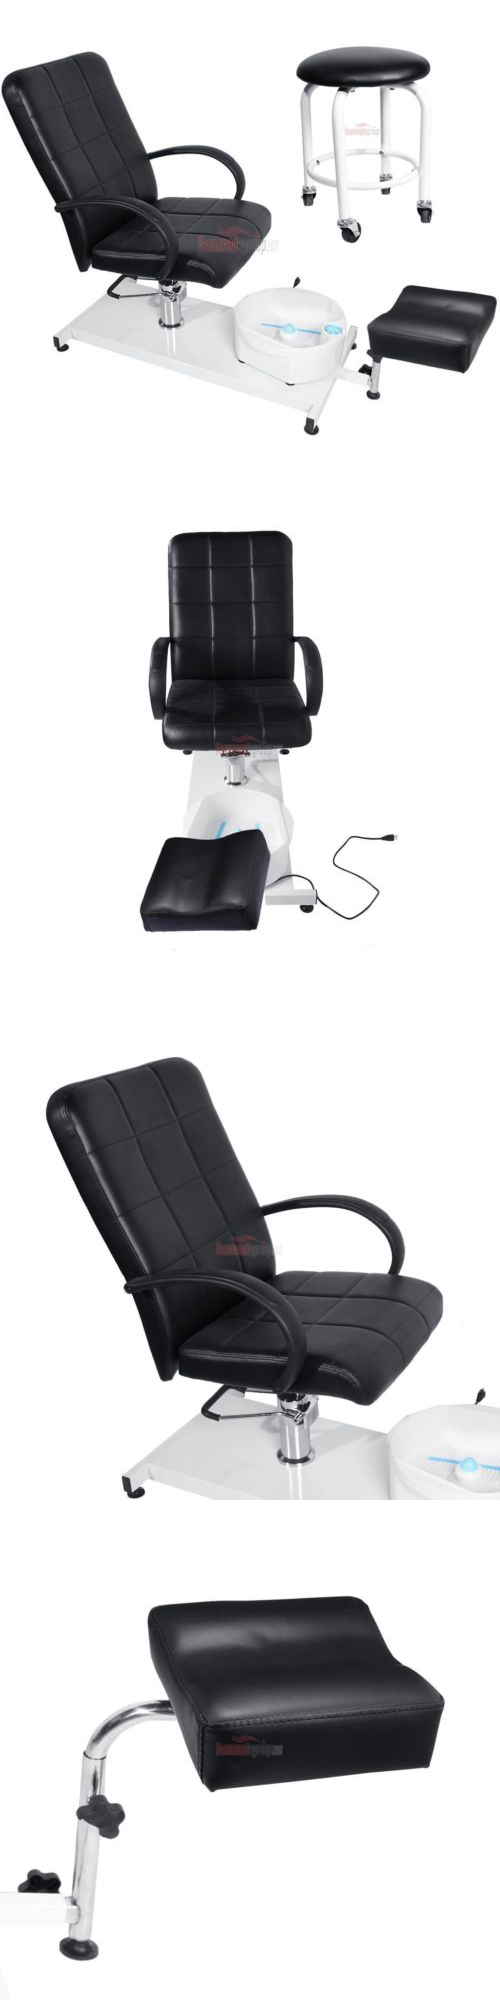 Spas Baths and Supplies: Black Pedicure Station Hydraulic Chair And ...